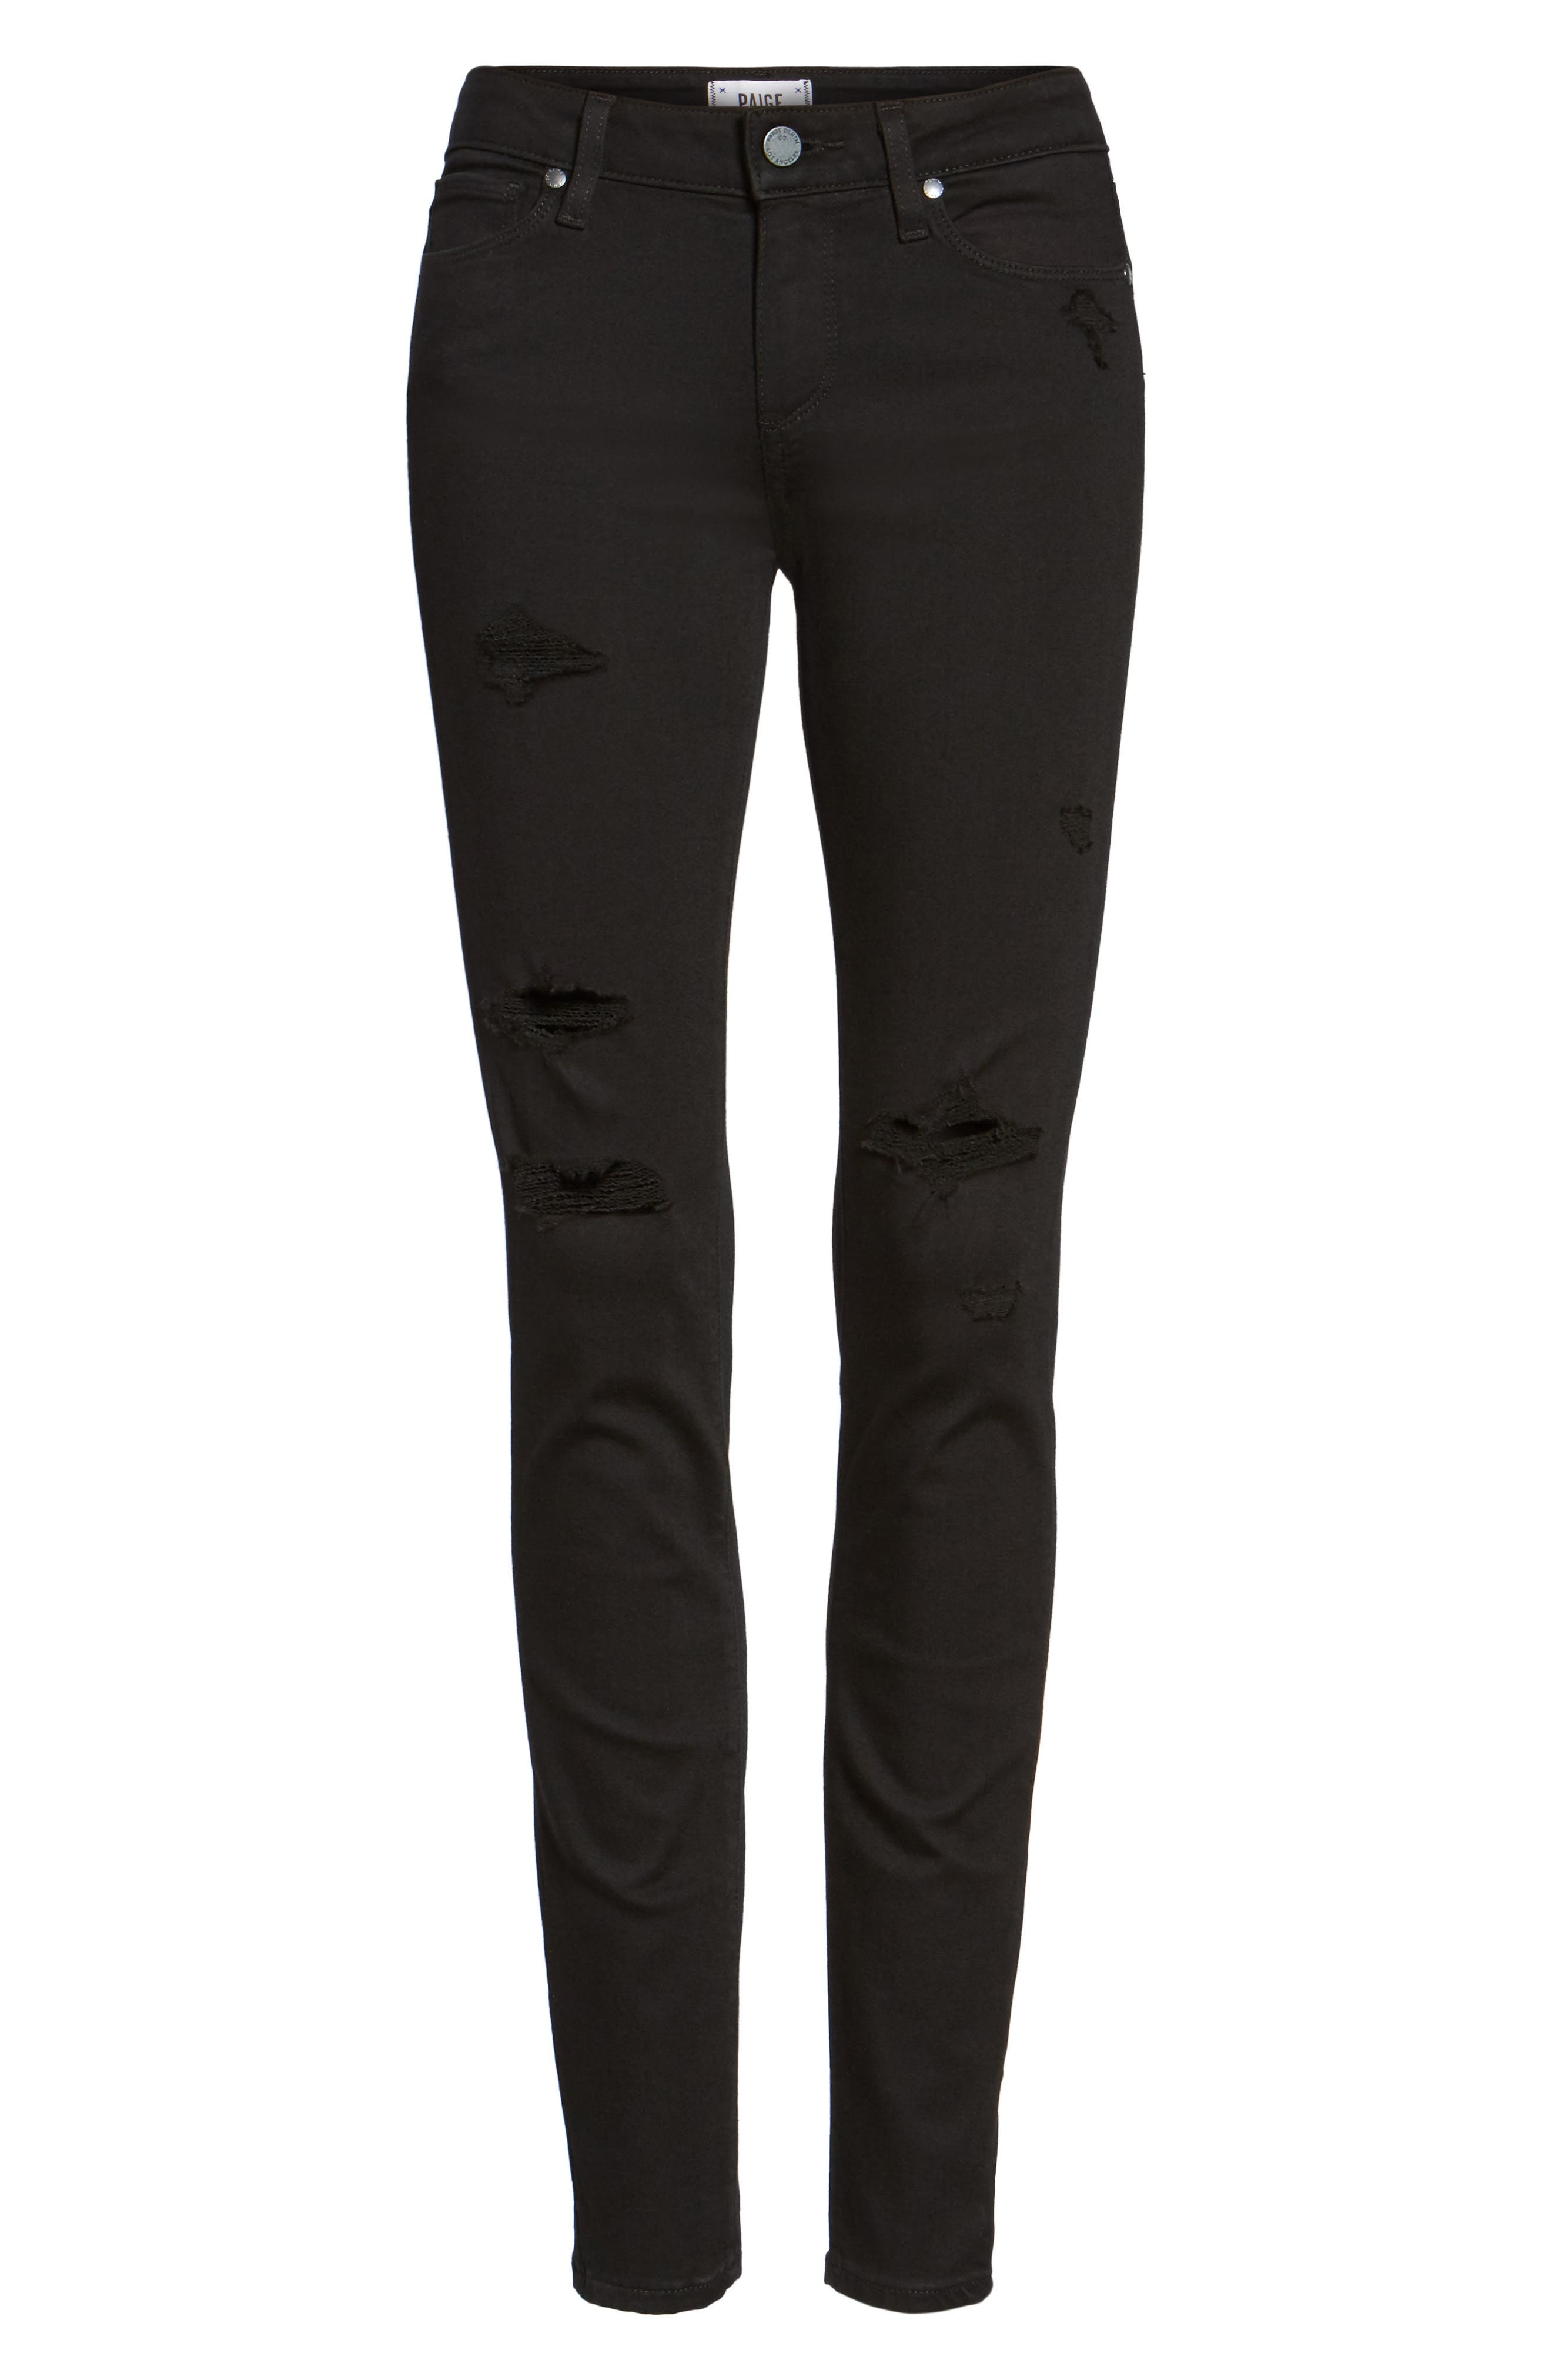 Transcend - Verdugo Ultra Skinny Jeans,                             Alternate thumbnail 2, color,                             001